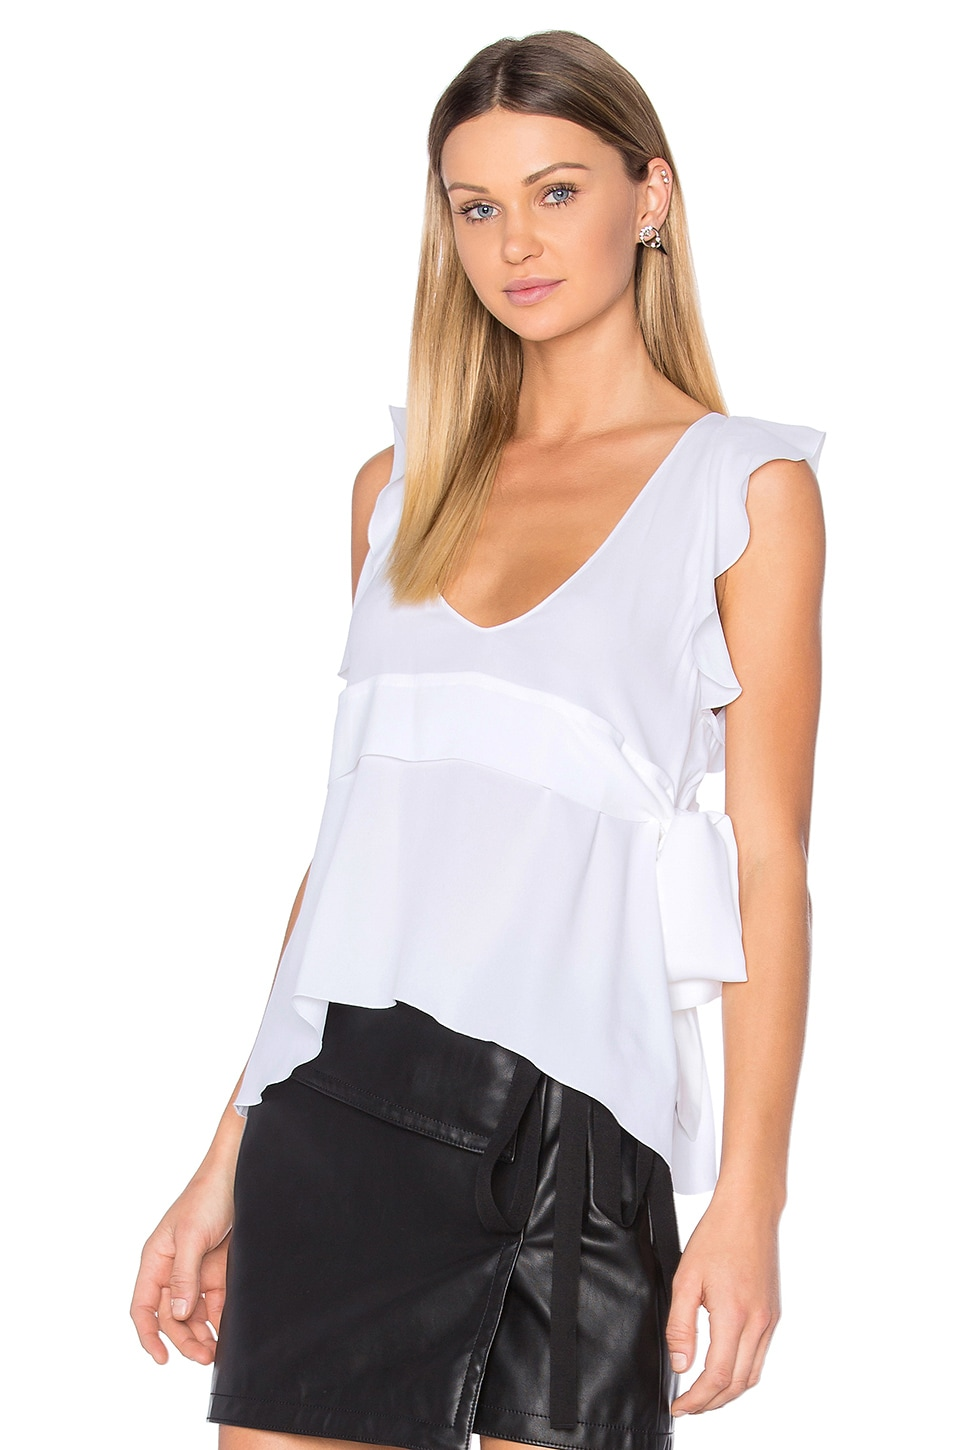 No. 21 Scoop Neck Blouse in White